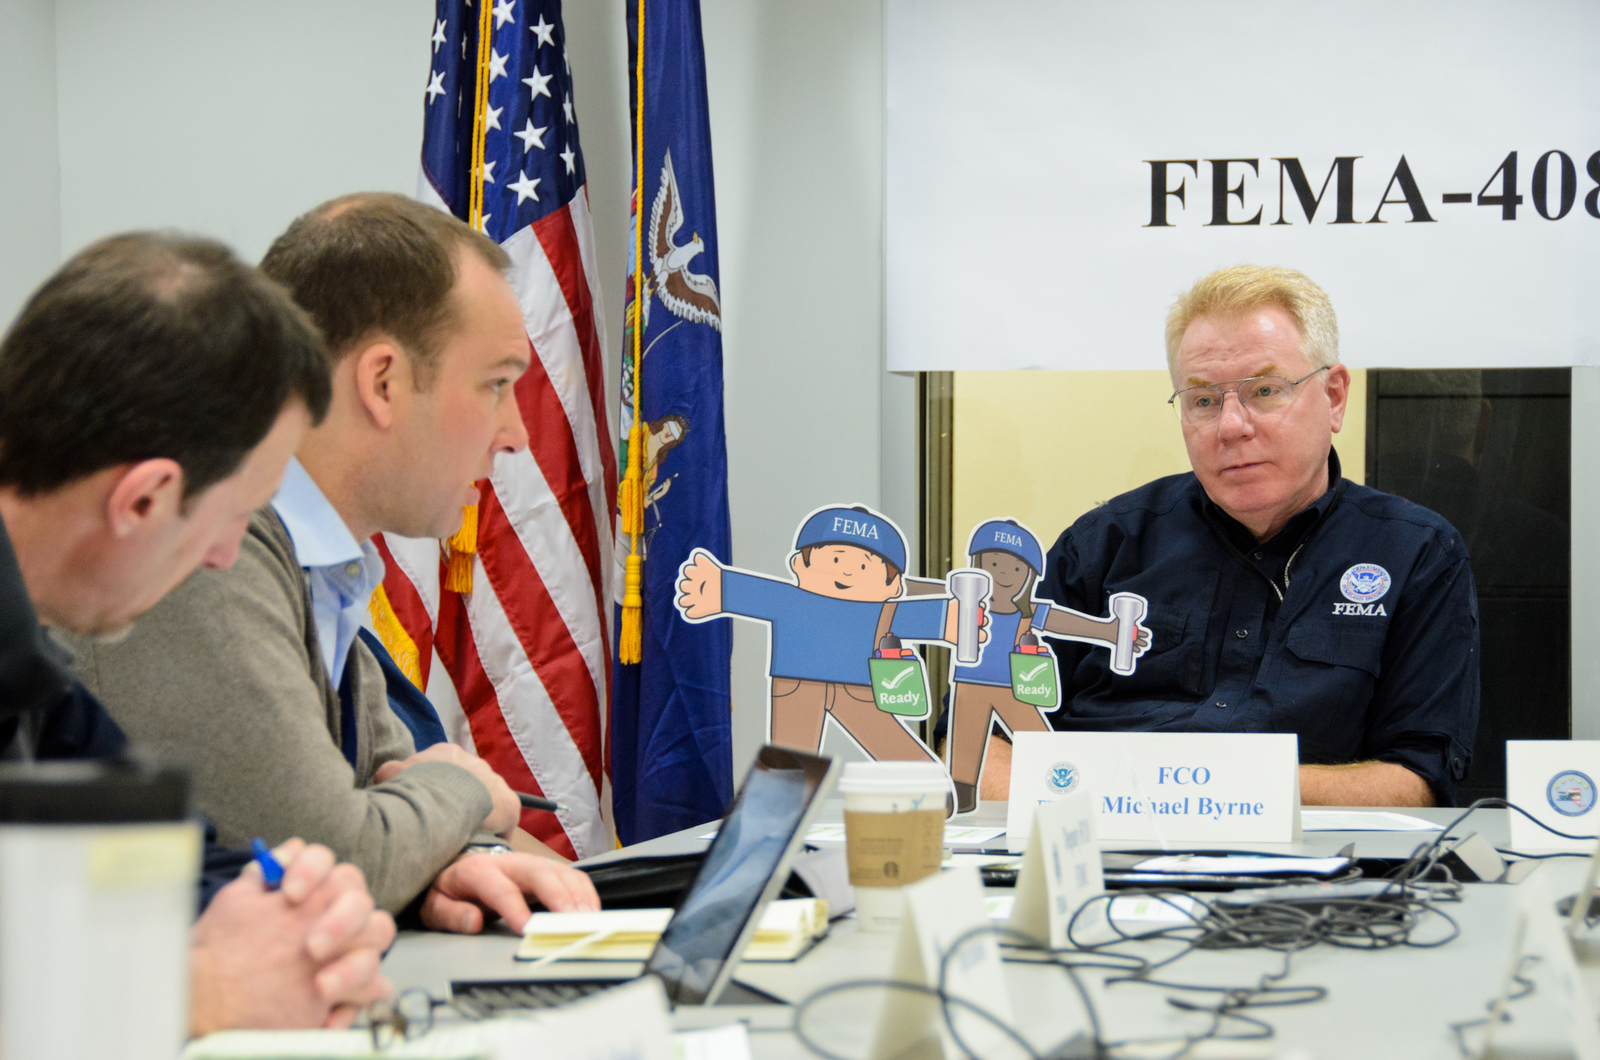 Queens, N.Y., Jan. 4, 2013 -- Flat Stella and Flat Stanley visit the FEMA Joint Field Office (JFO) in Queens, NY to attend meetings with FEMA Federal Coordinating Officer Michael Byrne, FEMA partners and associates. Andre R. Aragon/FEMA